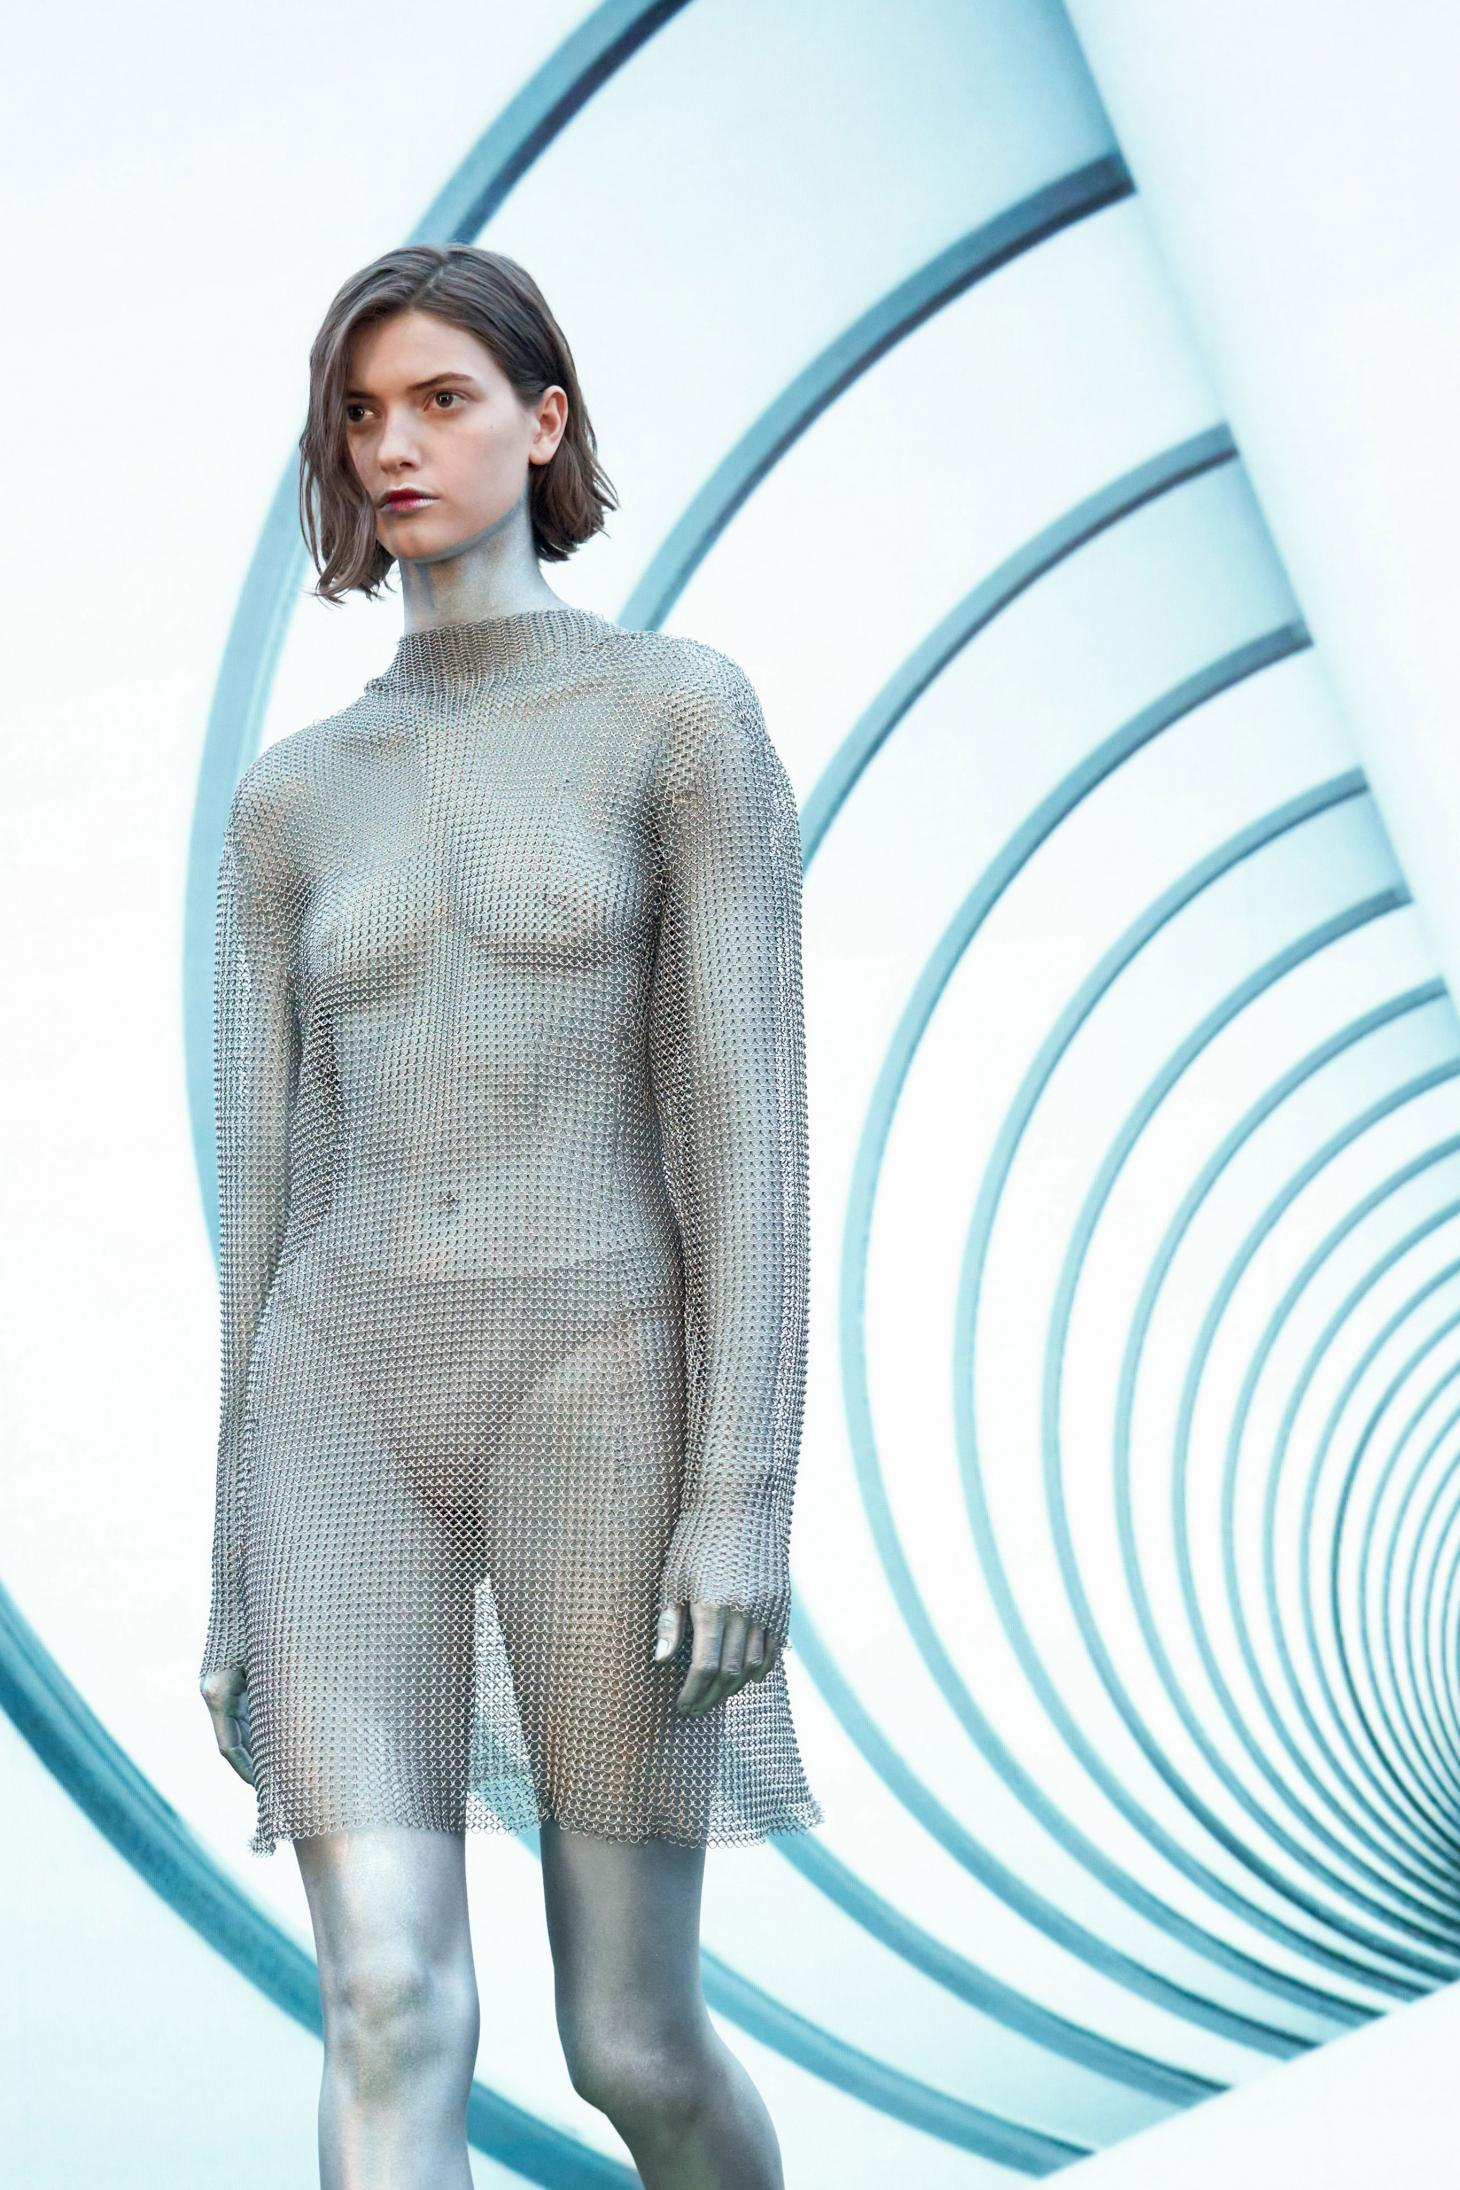 Salvatore Ferragamo beauty A/W 2021 with woman in silver body paint and silver chain mail